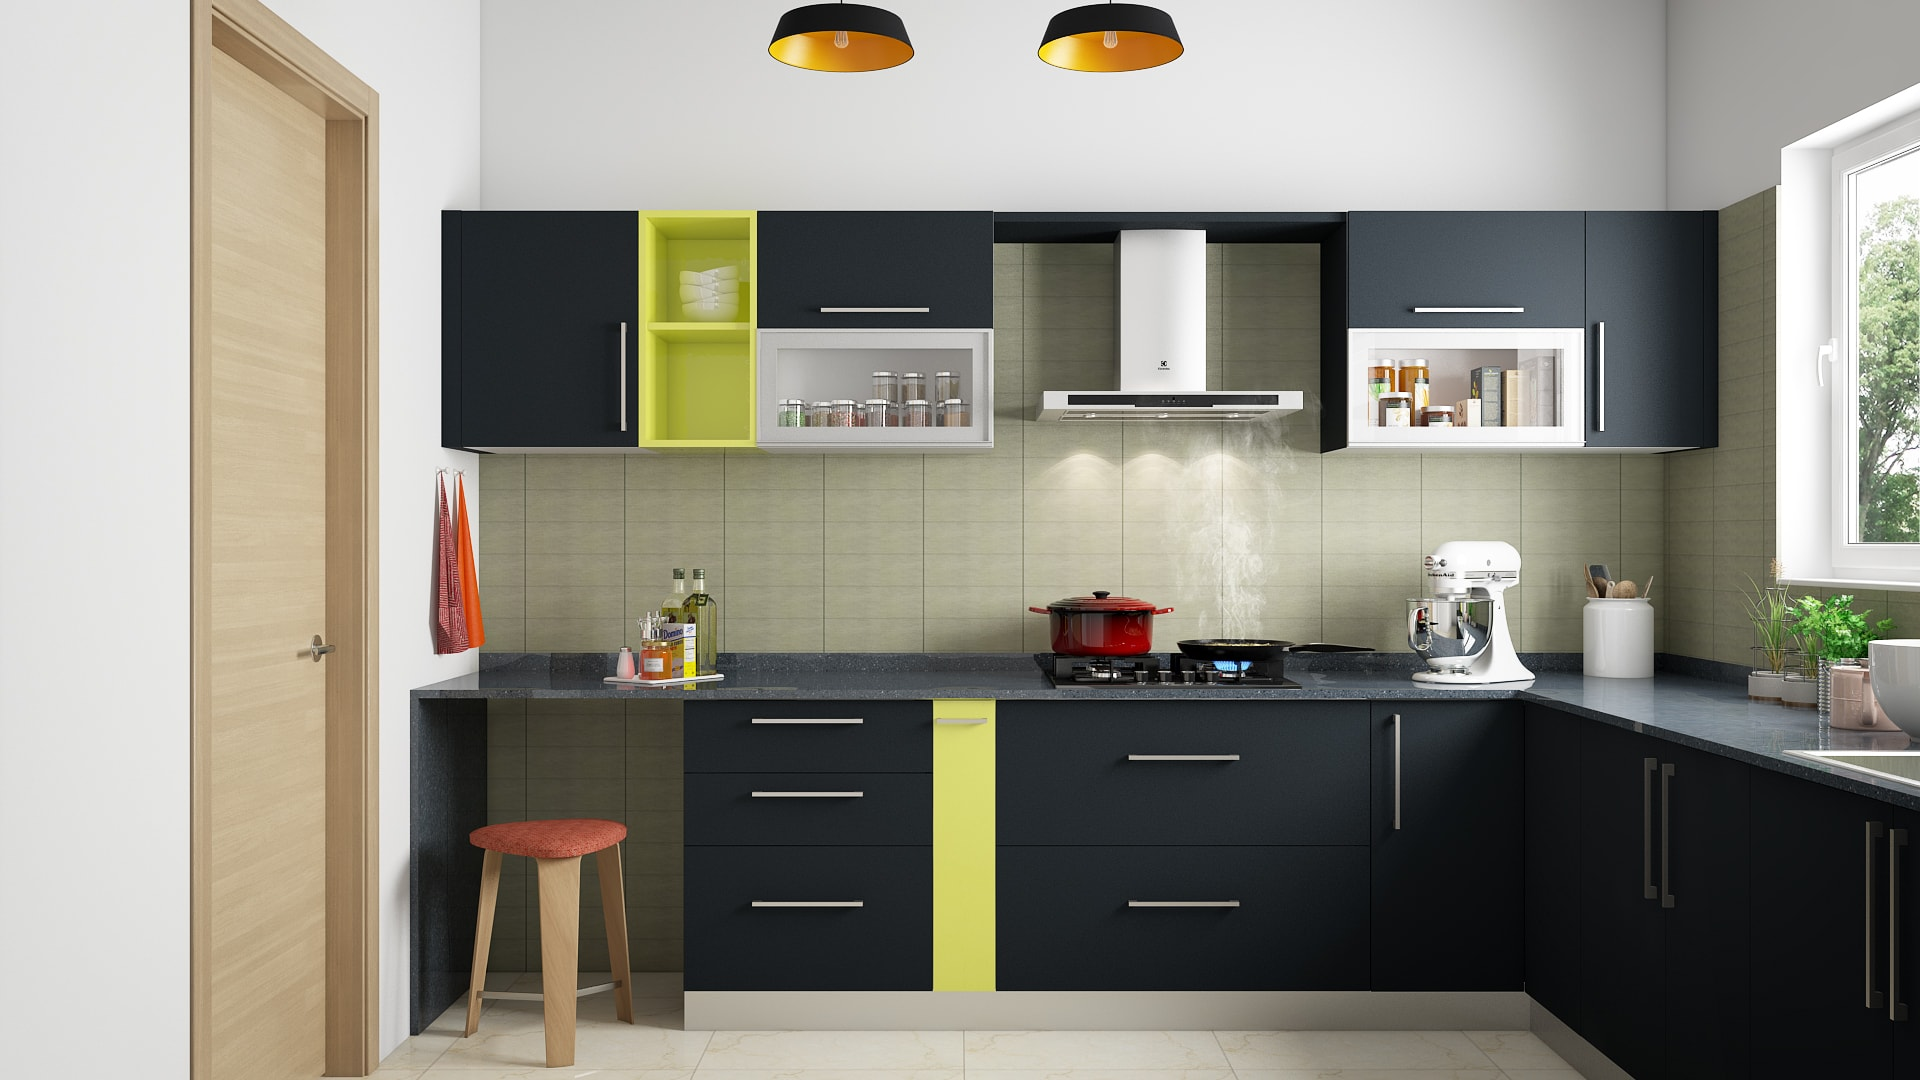 Small Space Low Cost Simple Kitchen Designs   Novocom.top